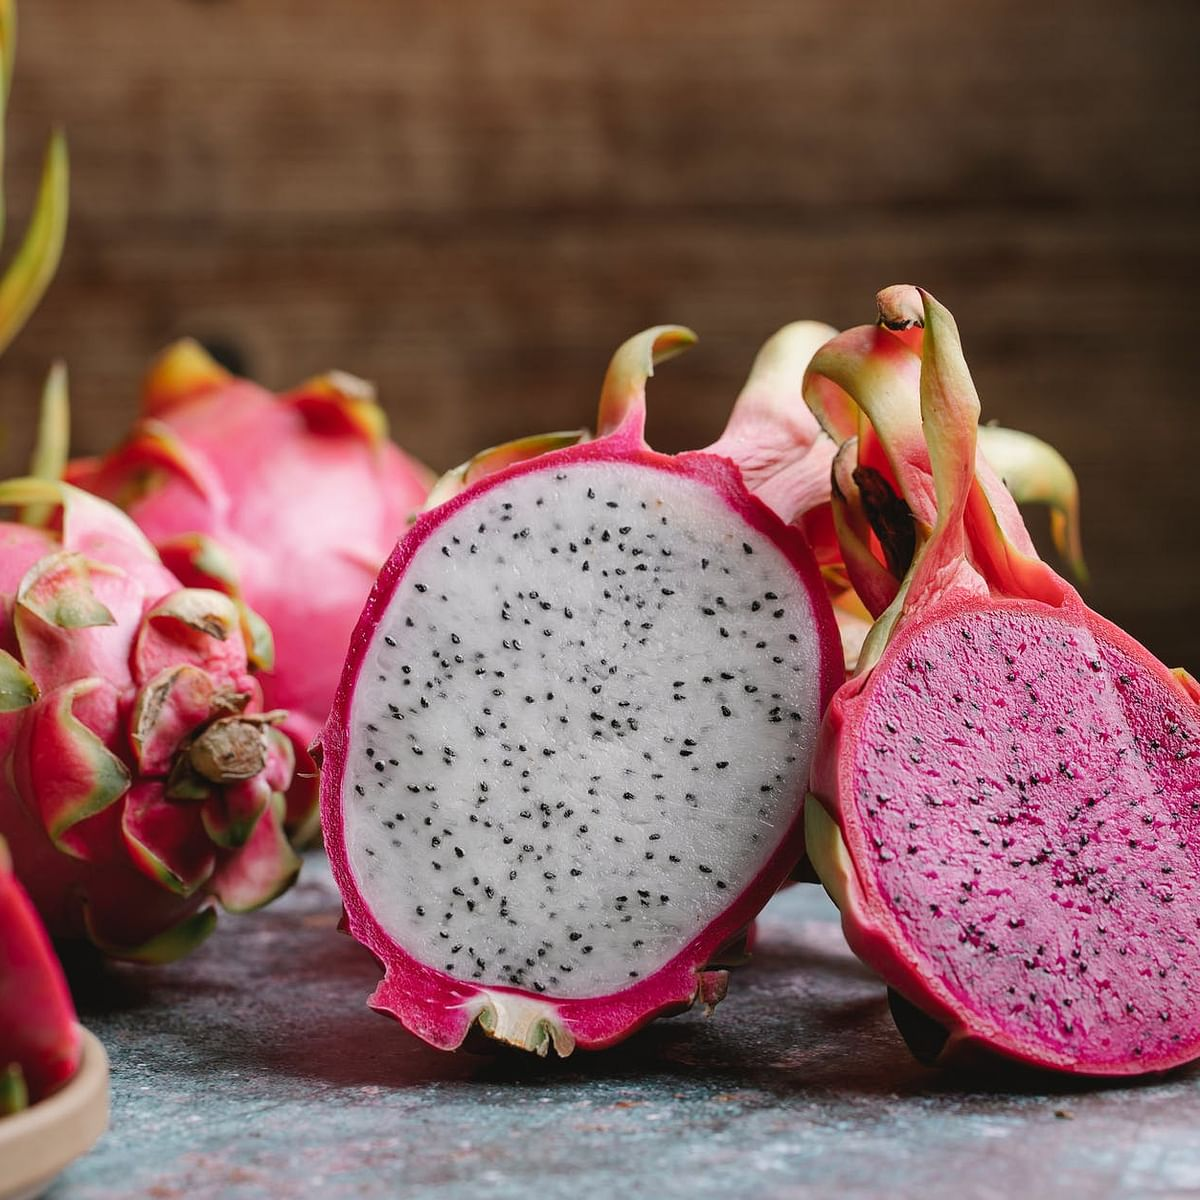 'BJP branding itself on fruits also': NCP takes dig at BJP as Gujarat govt renames dragon fruit